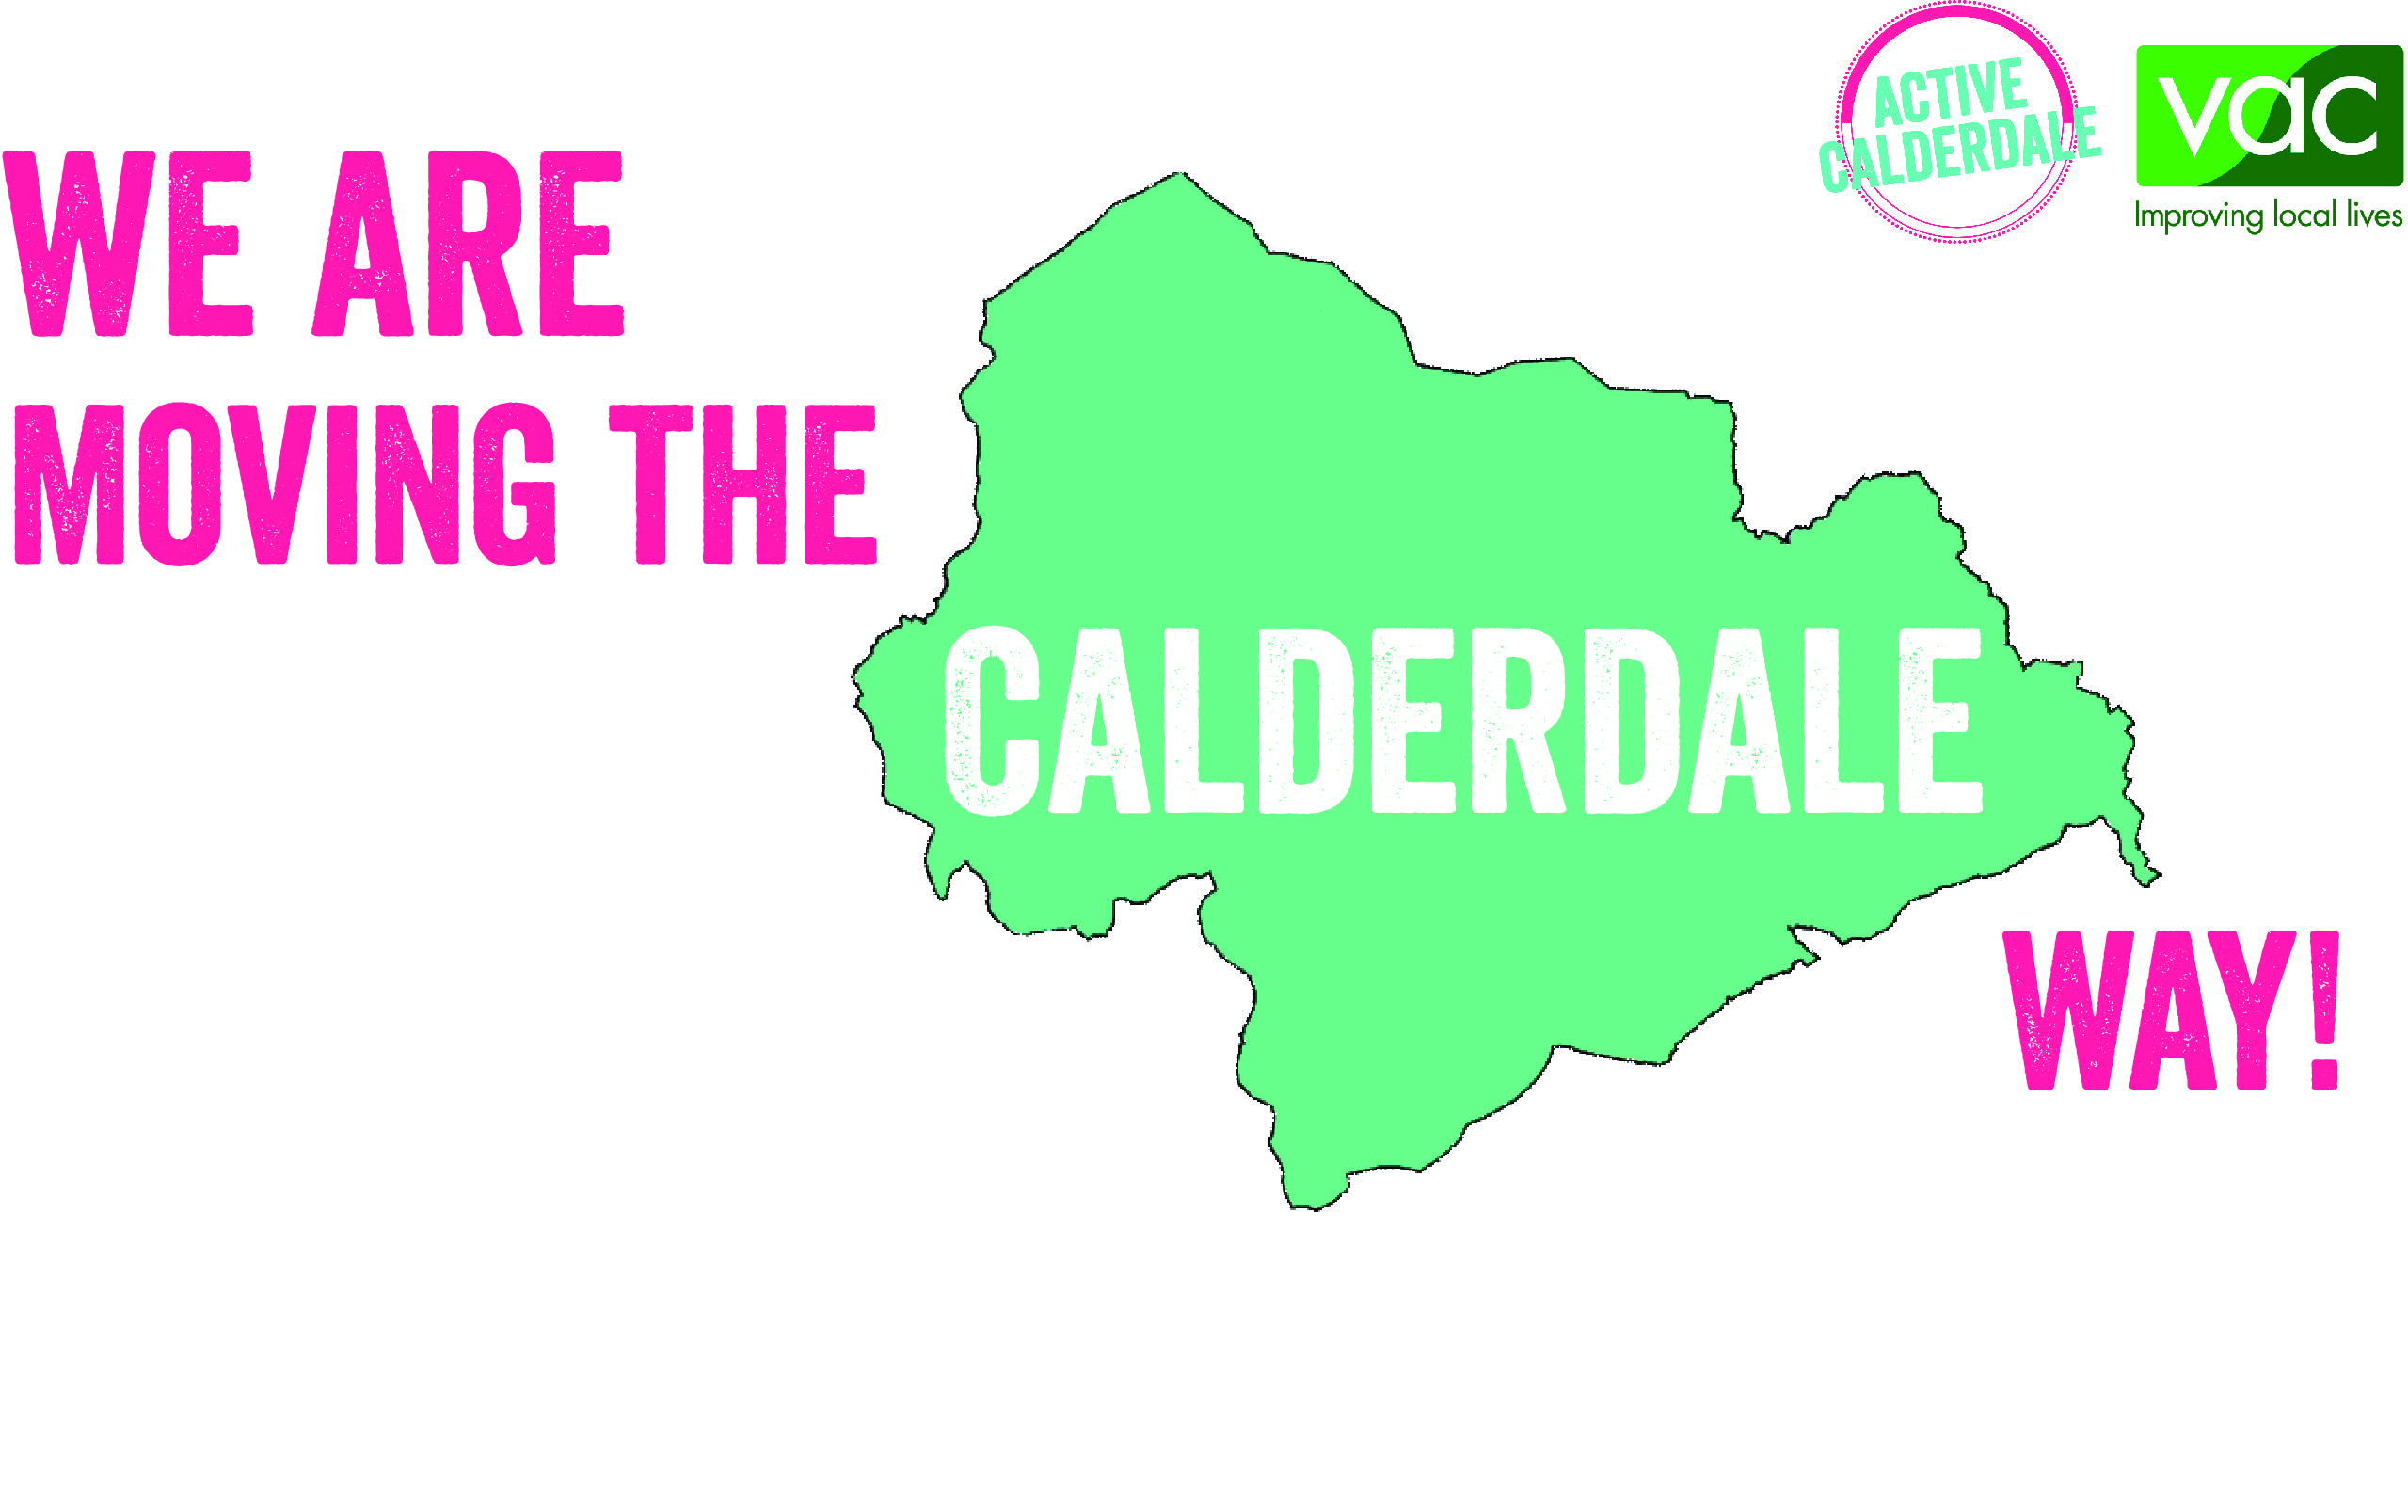 Move the Calderdale Way logo - 'We are moving the Calderdale way'